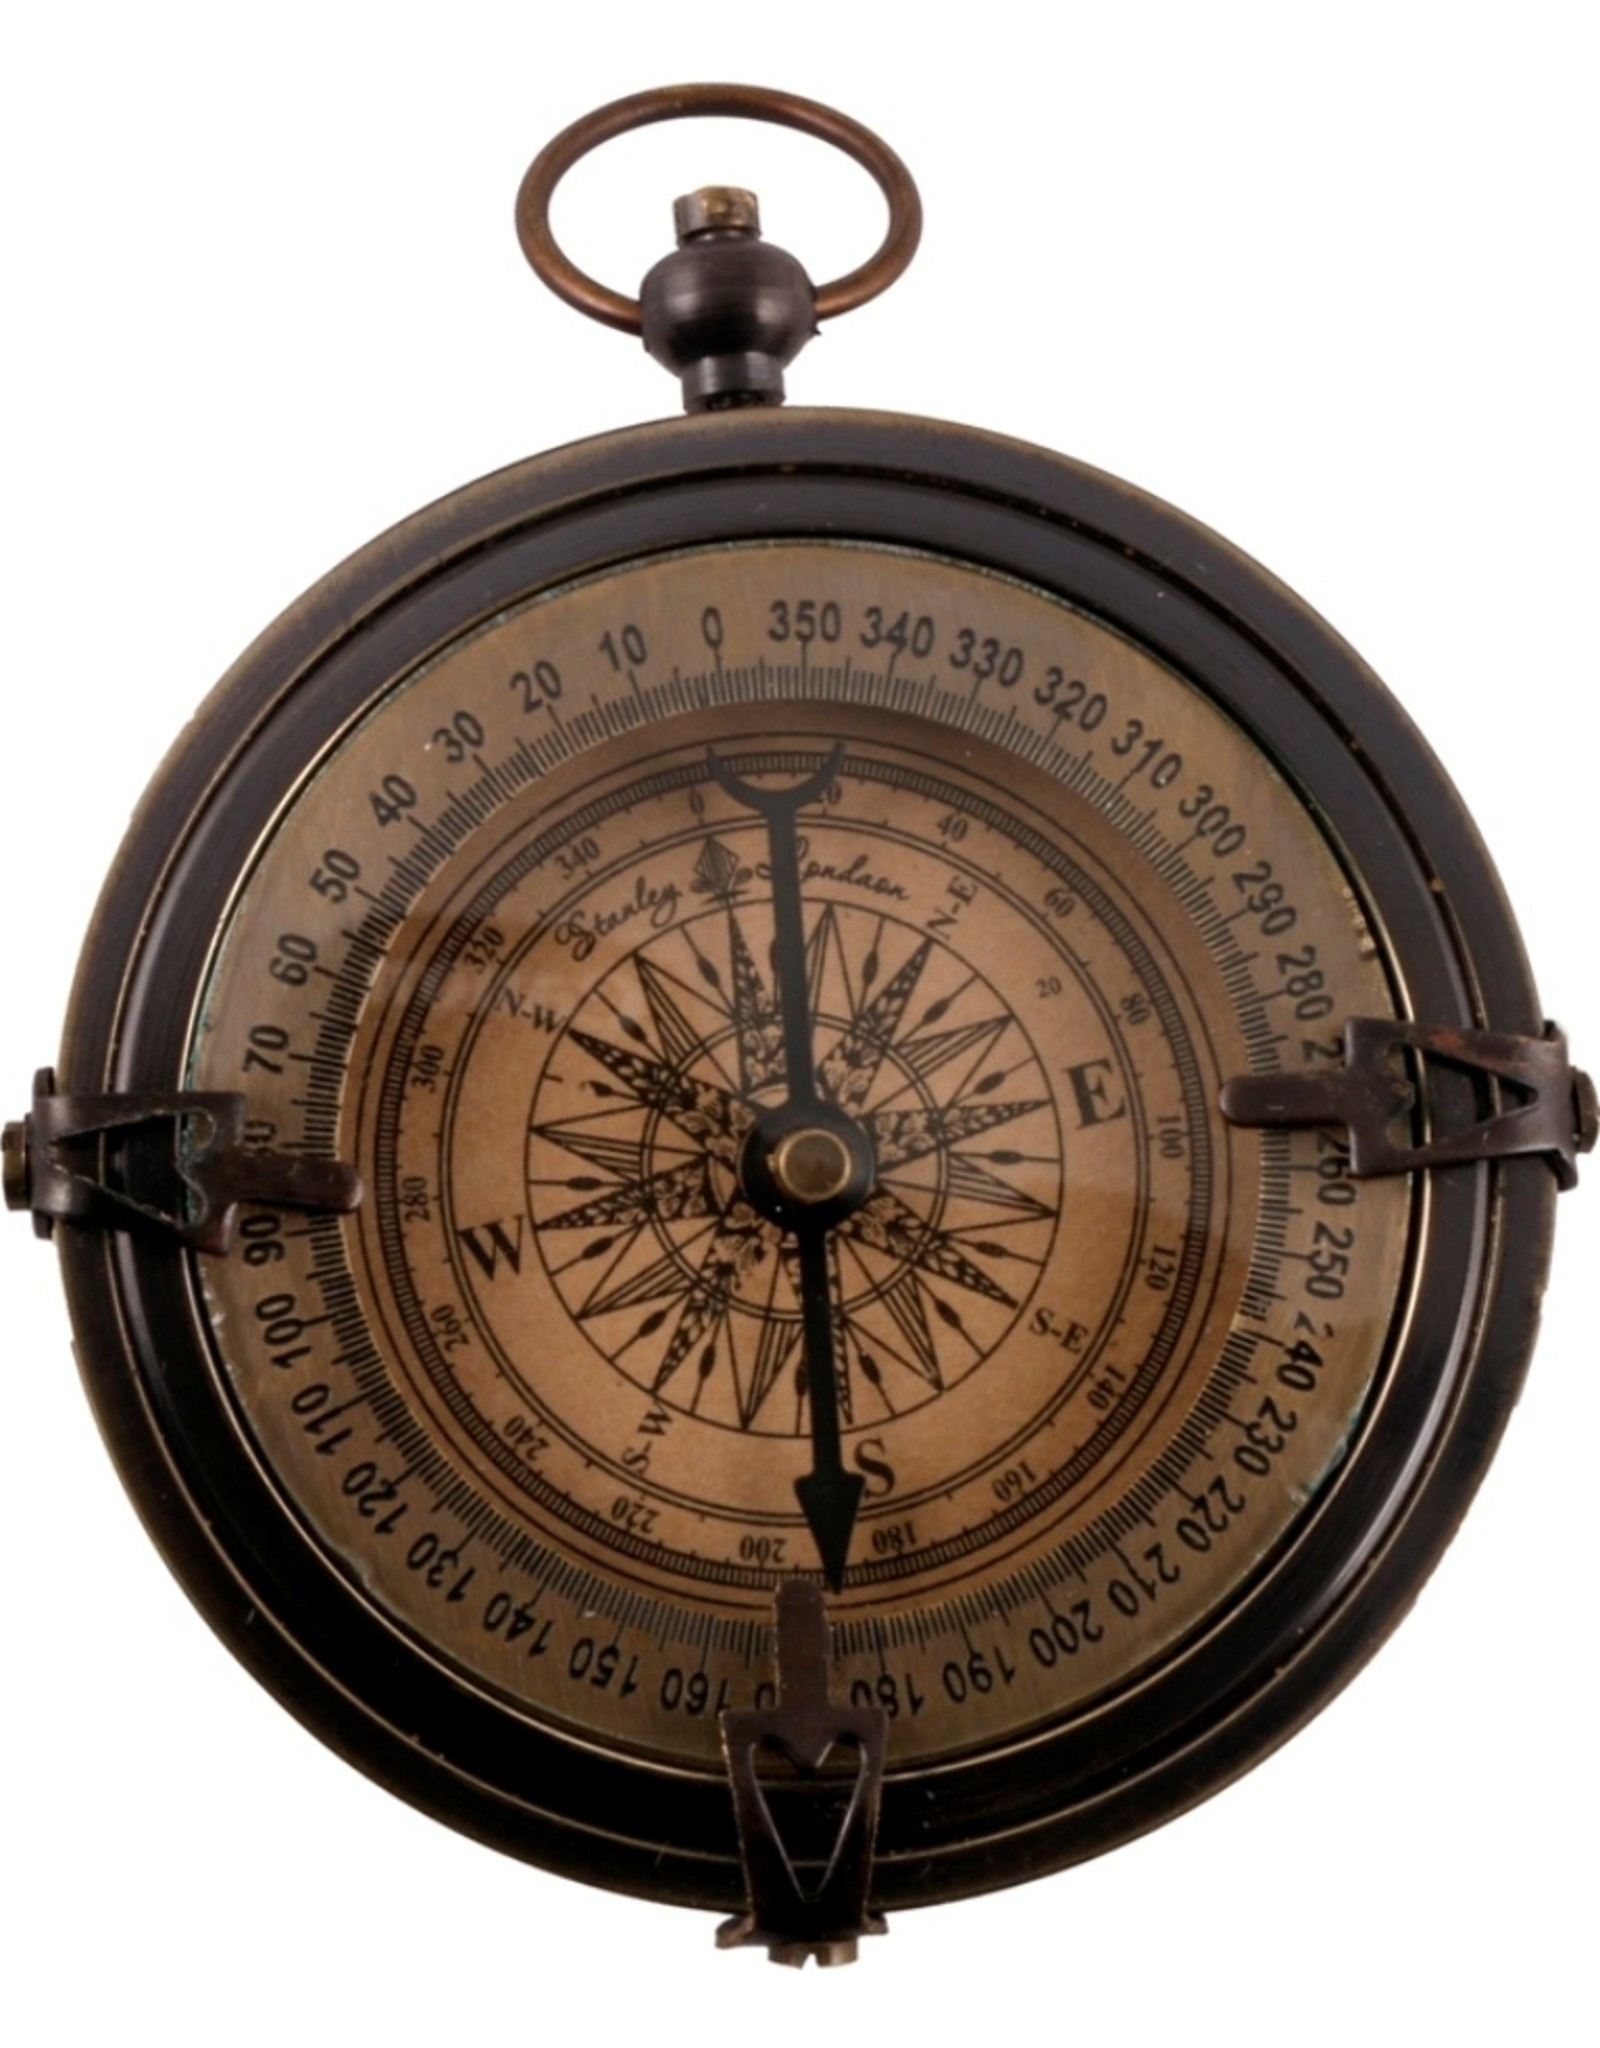 Trukado Giftware Figurines Collectables - Compass Antique Finish